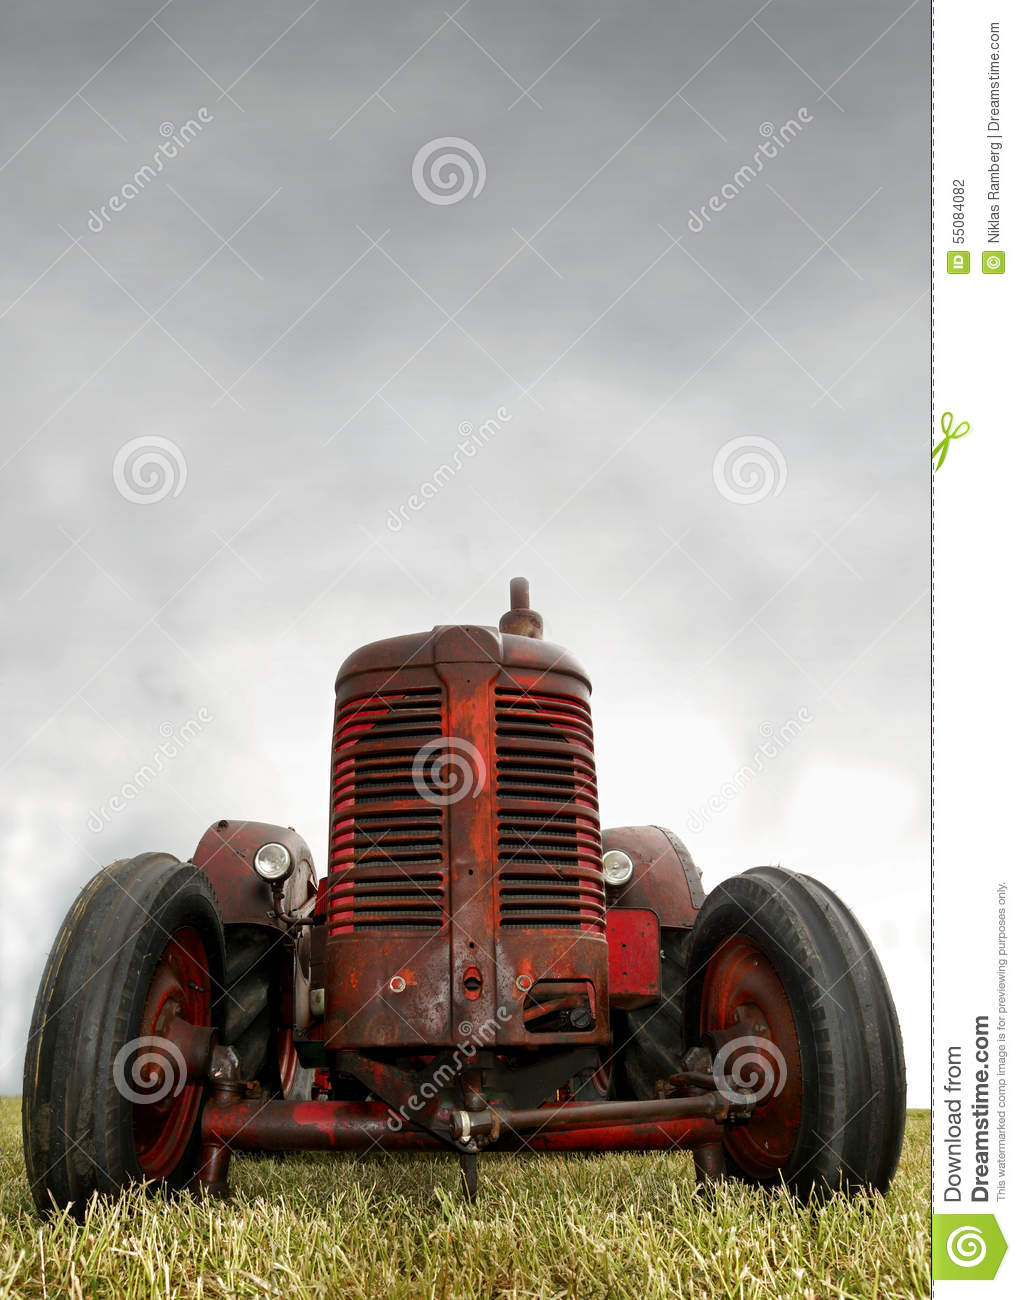 Vintage Tractor Cartoon : Red tractor closeup royalty free stock photography